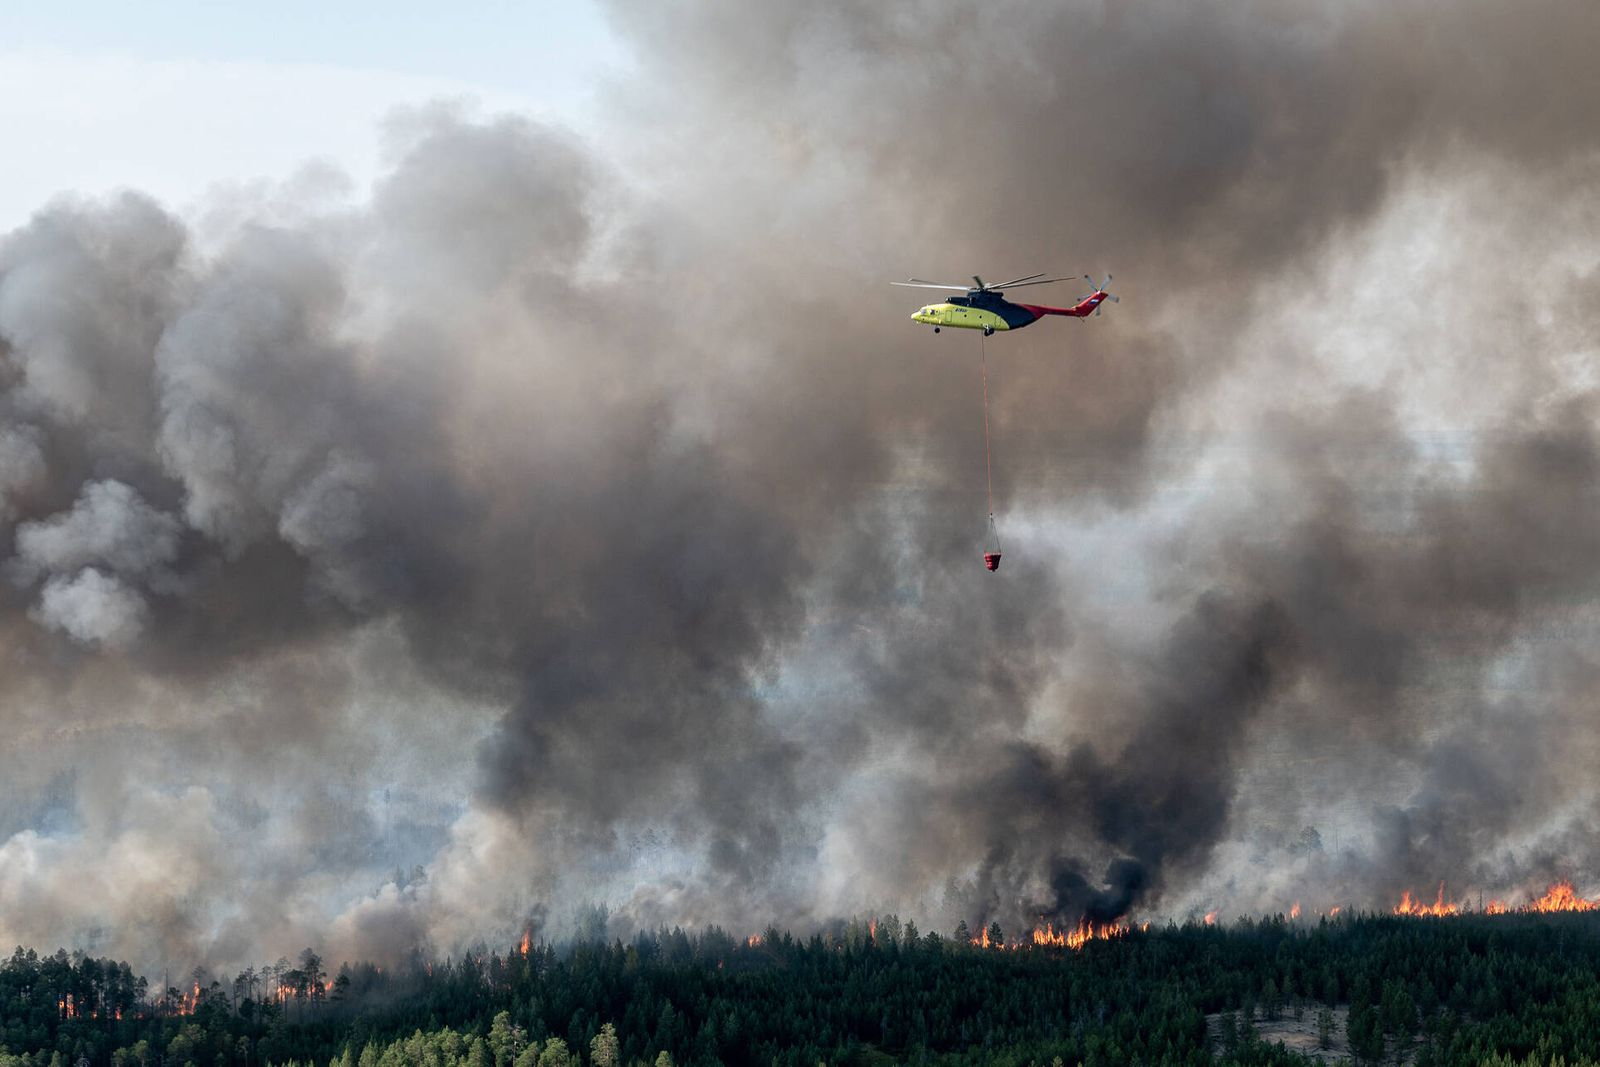 KHANTY-MANSI AUTONOMOUS AREA, RUSSIA - JULY 21, 2020: A helicopter battles a wildfire in the taiga in Sovetsky District